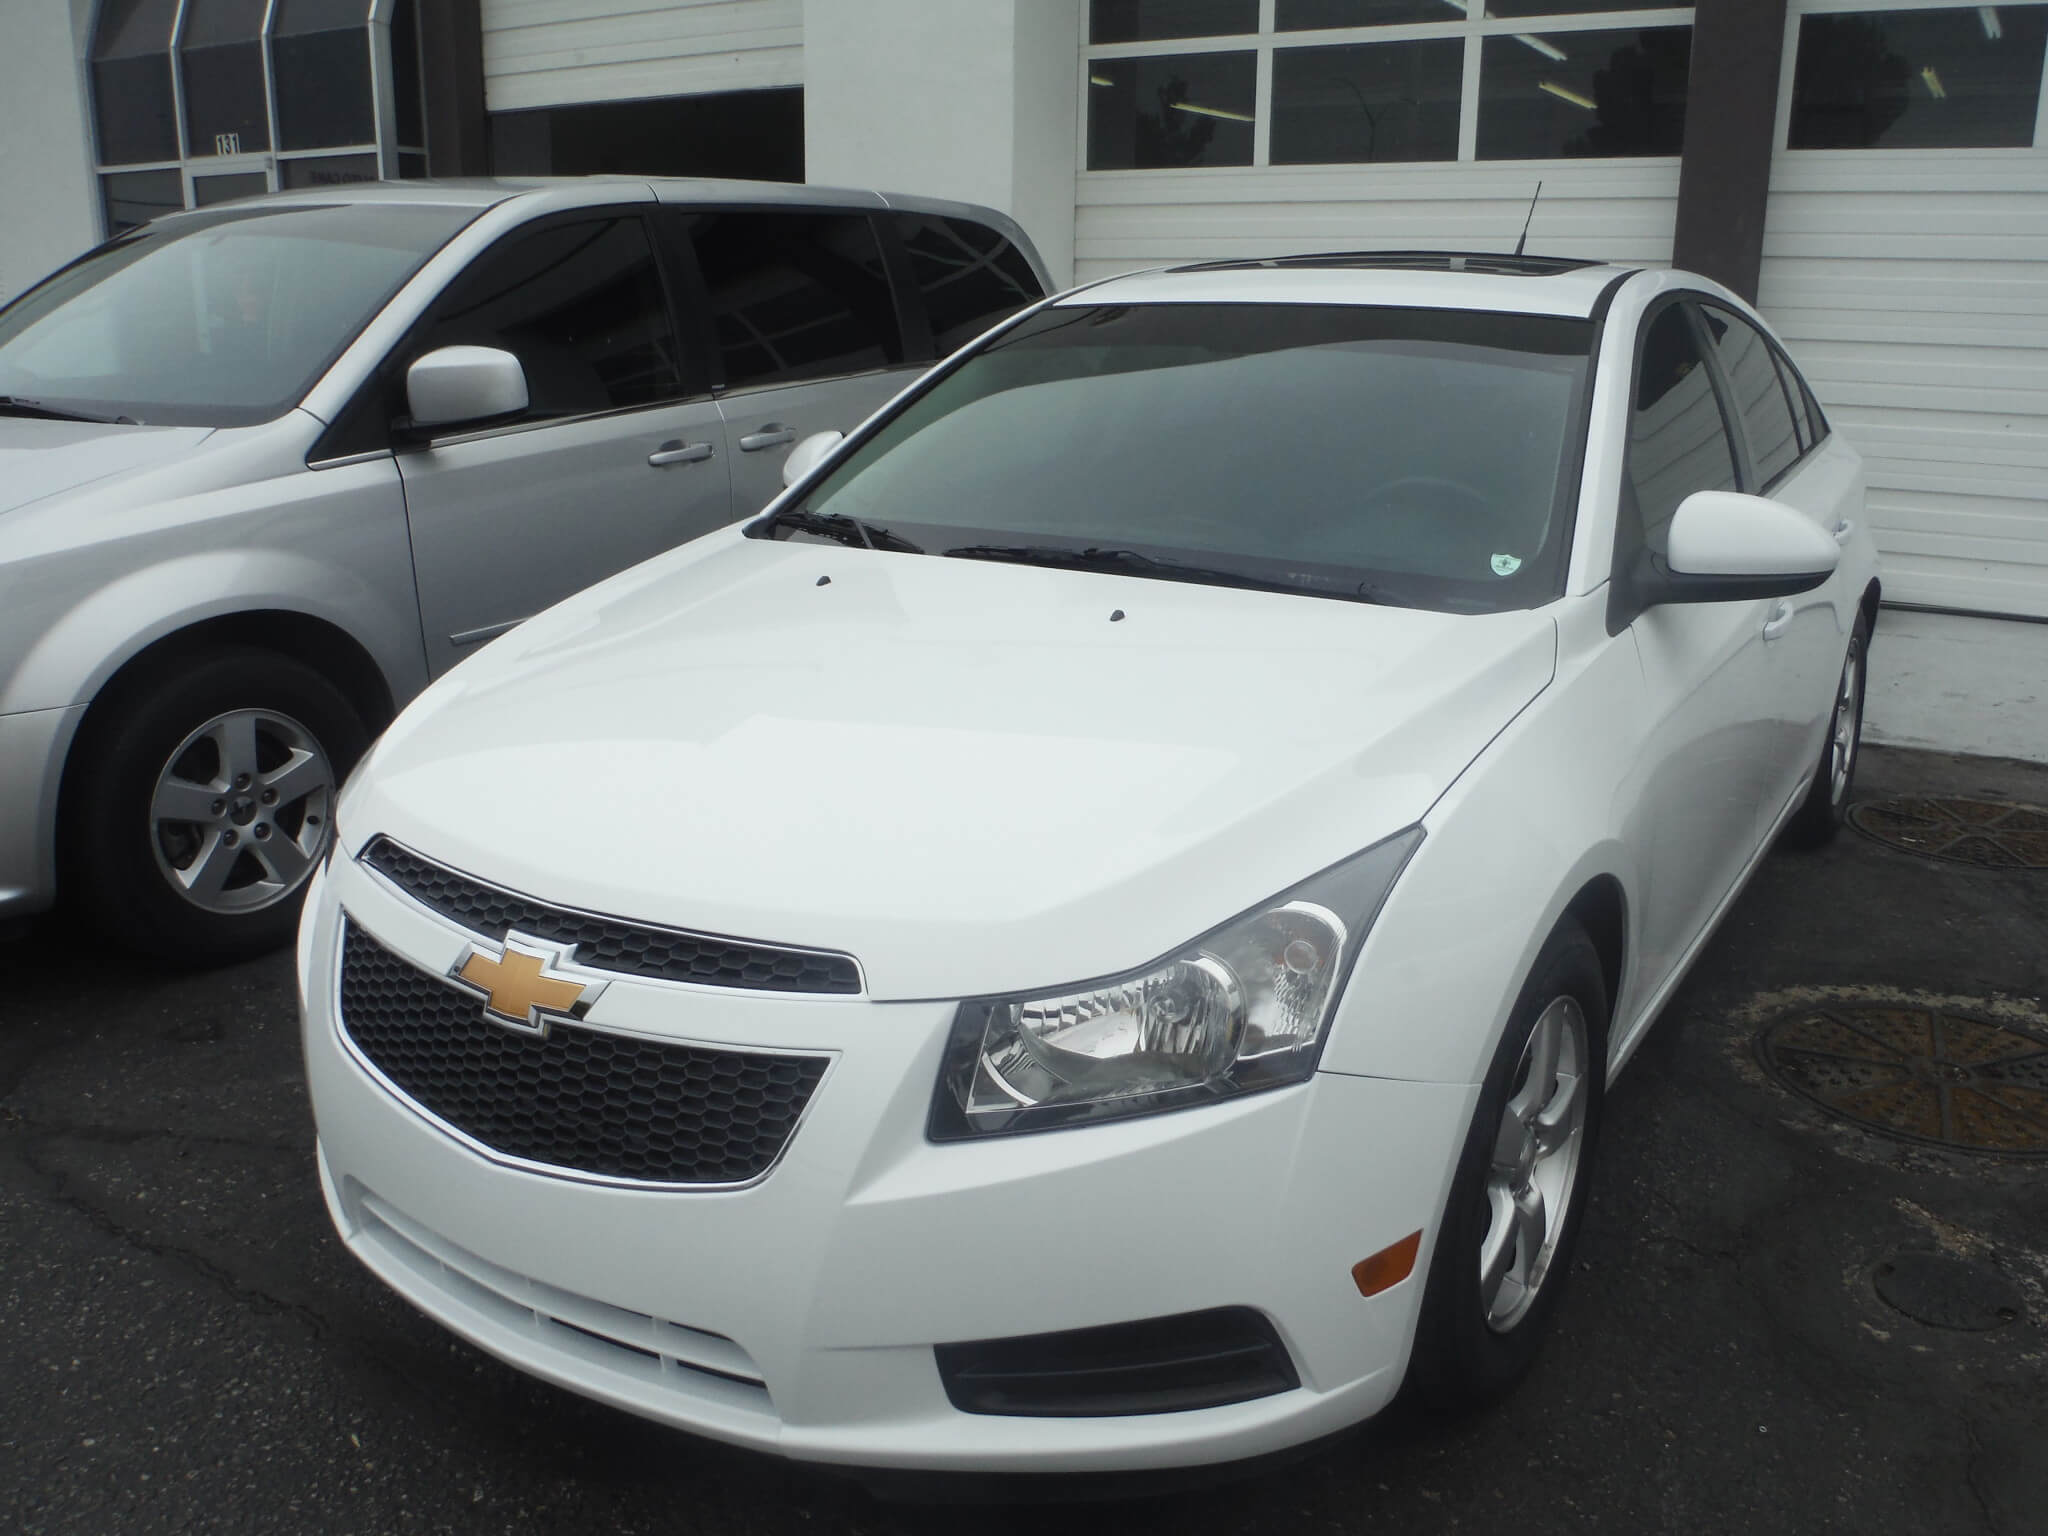 chevy cruze after body repair